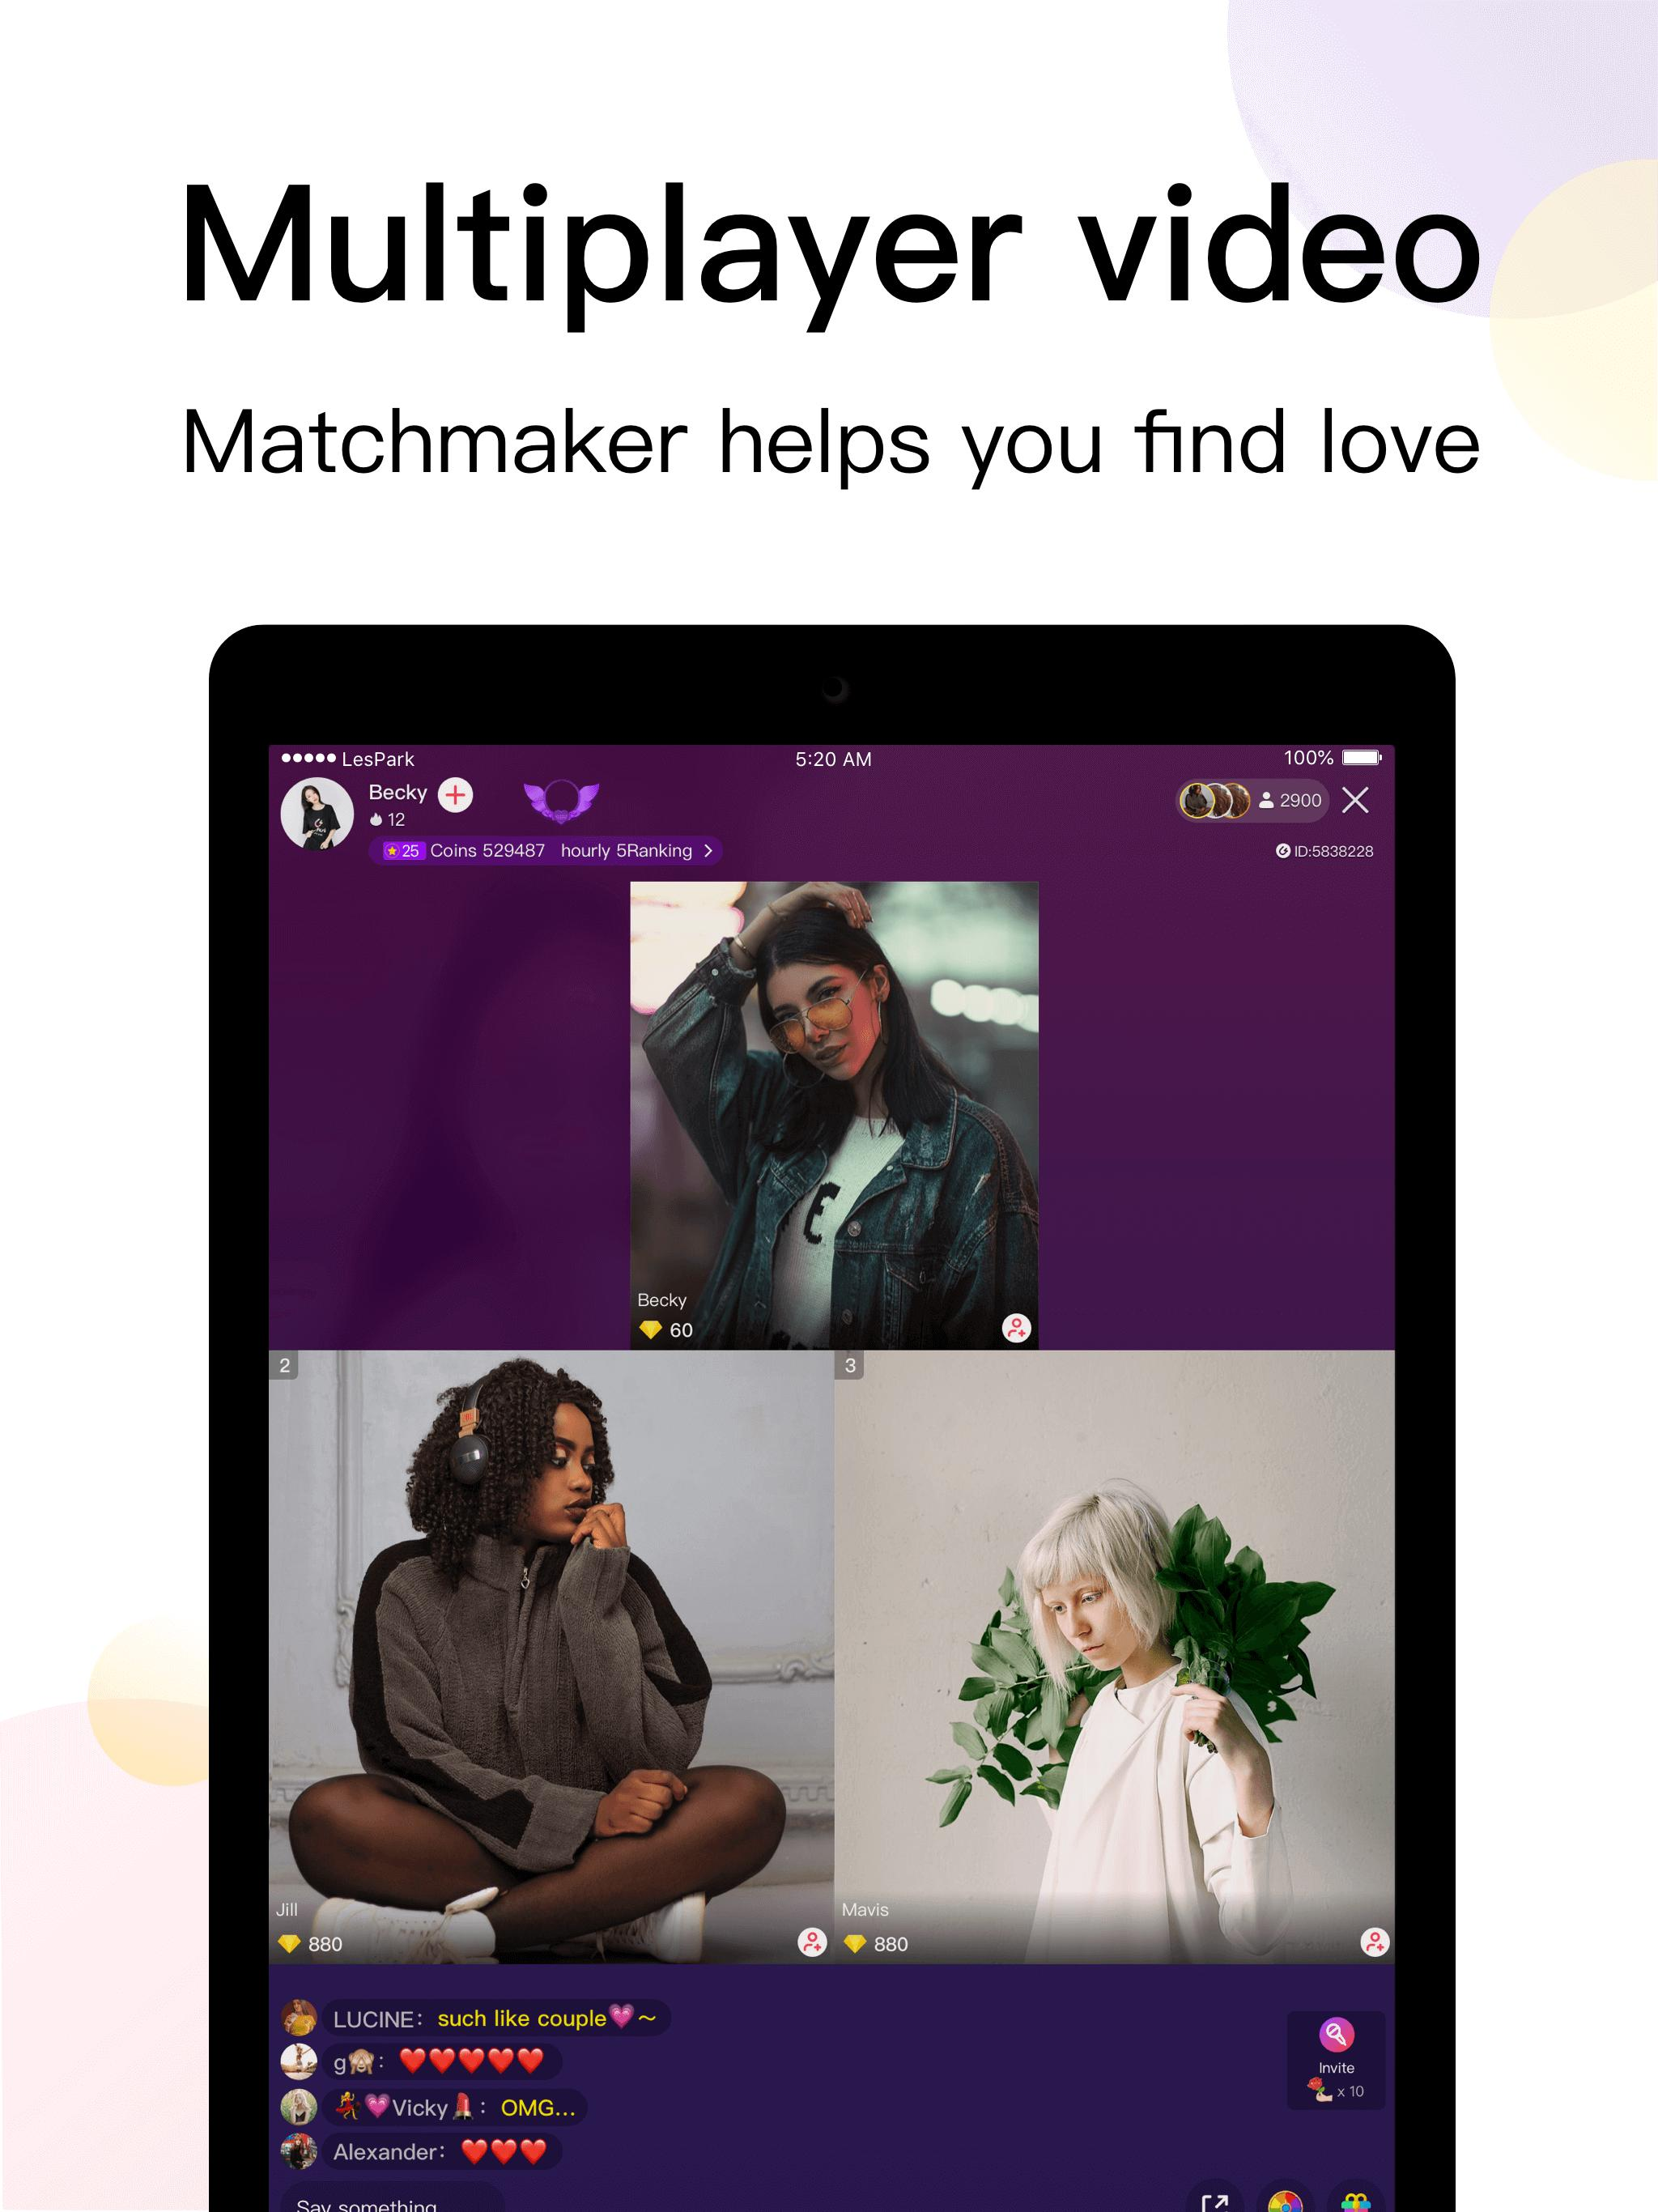 Rela, a Chinese lesbian dating app, exposed 5 million user